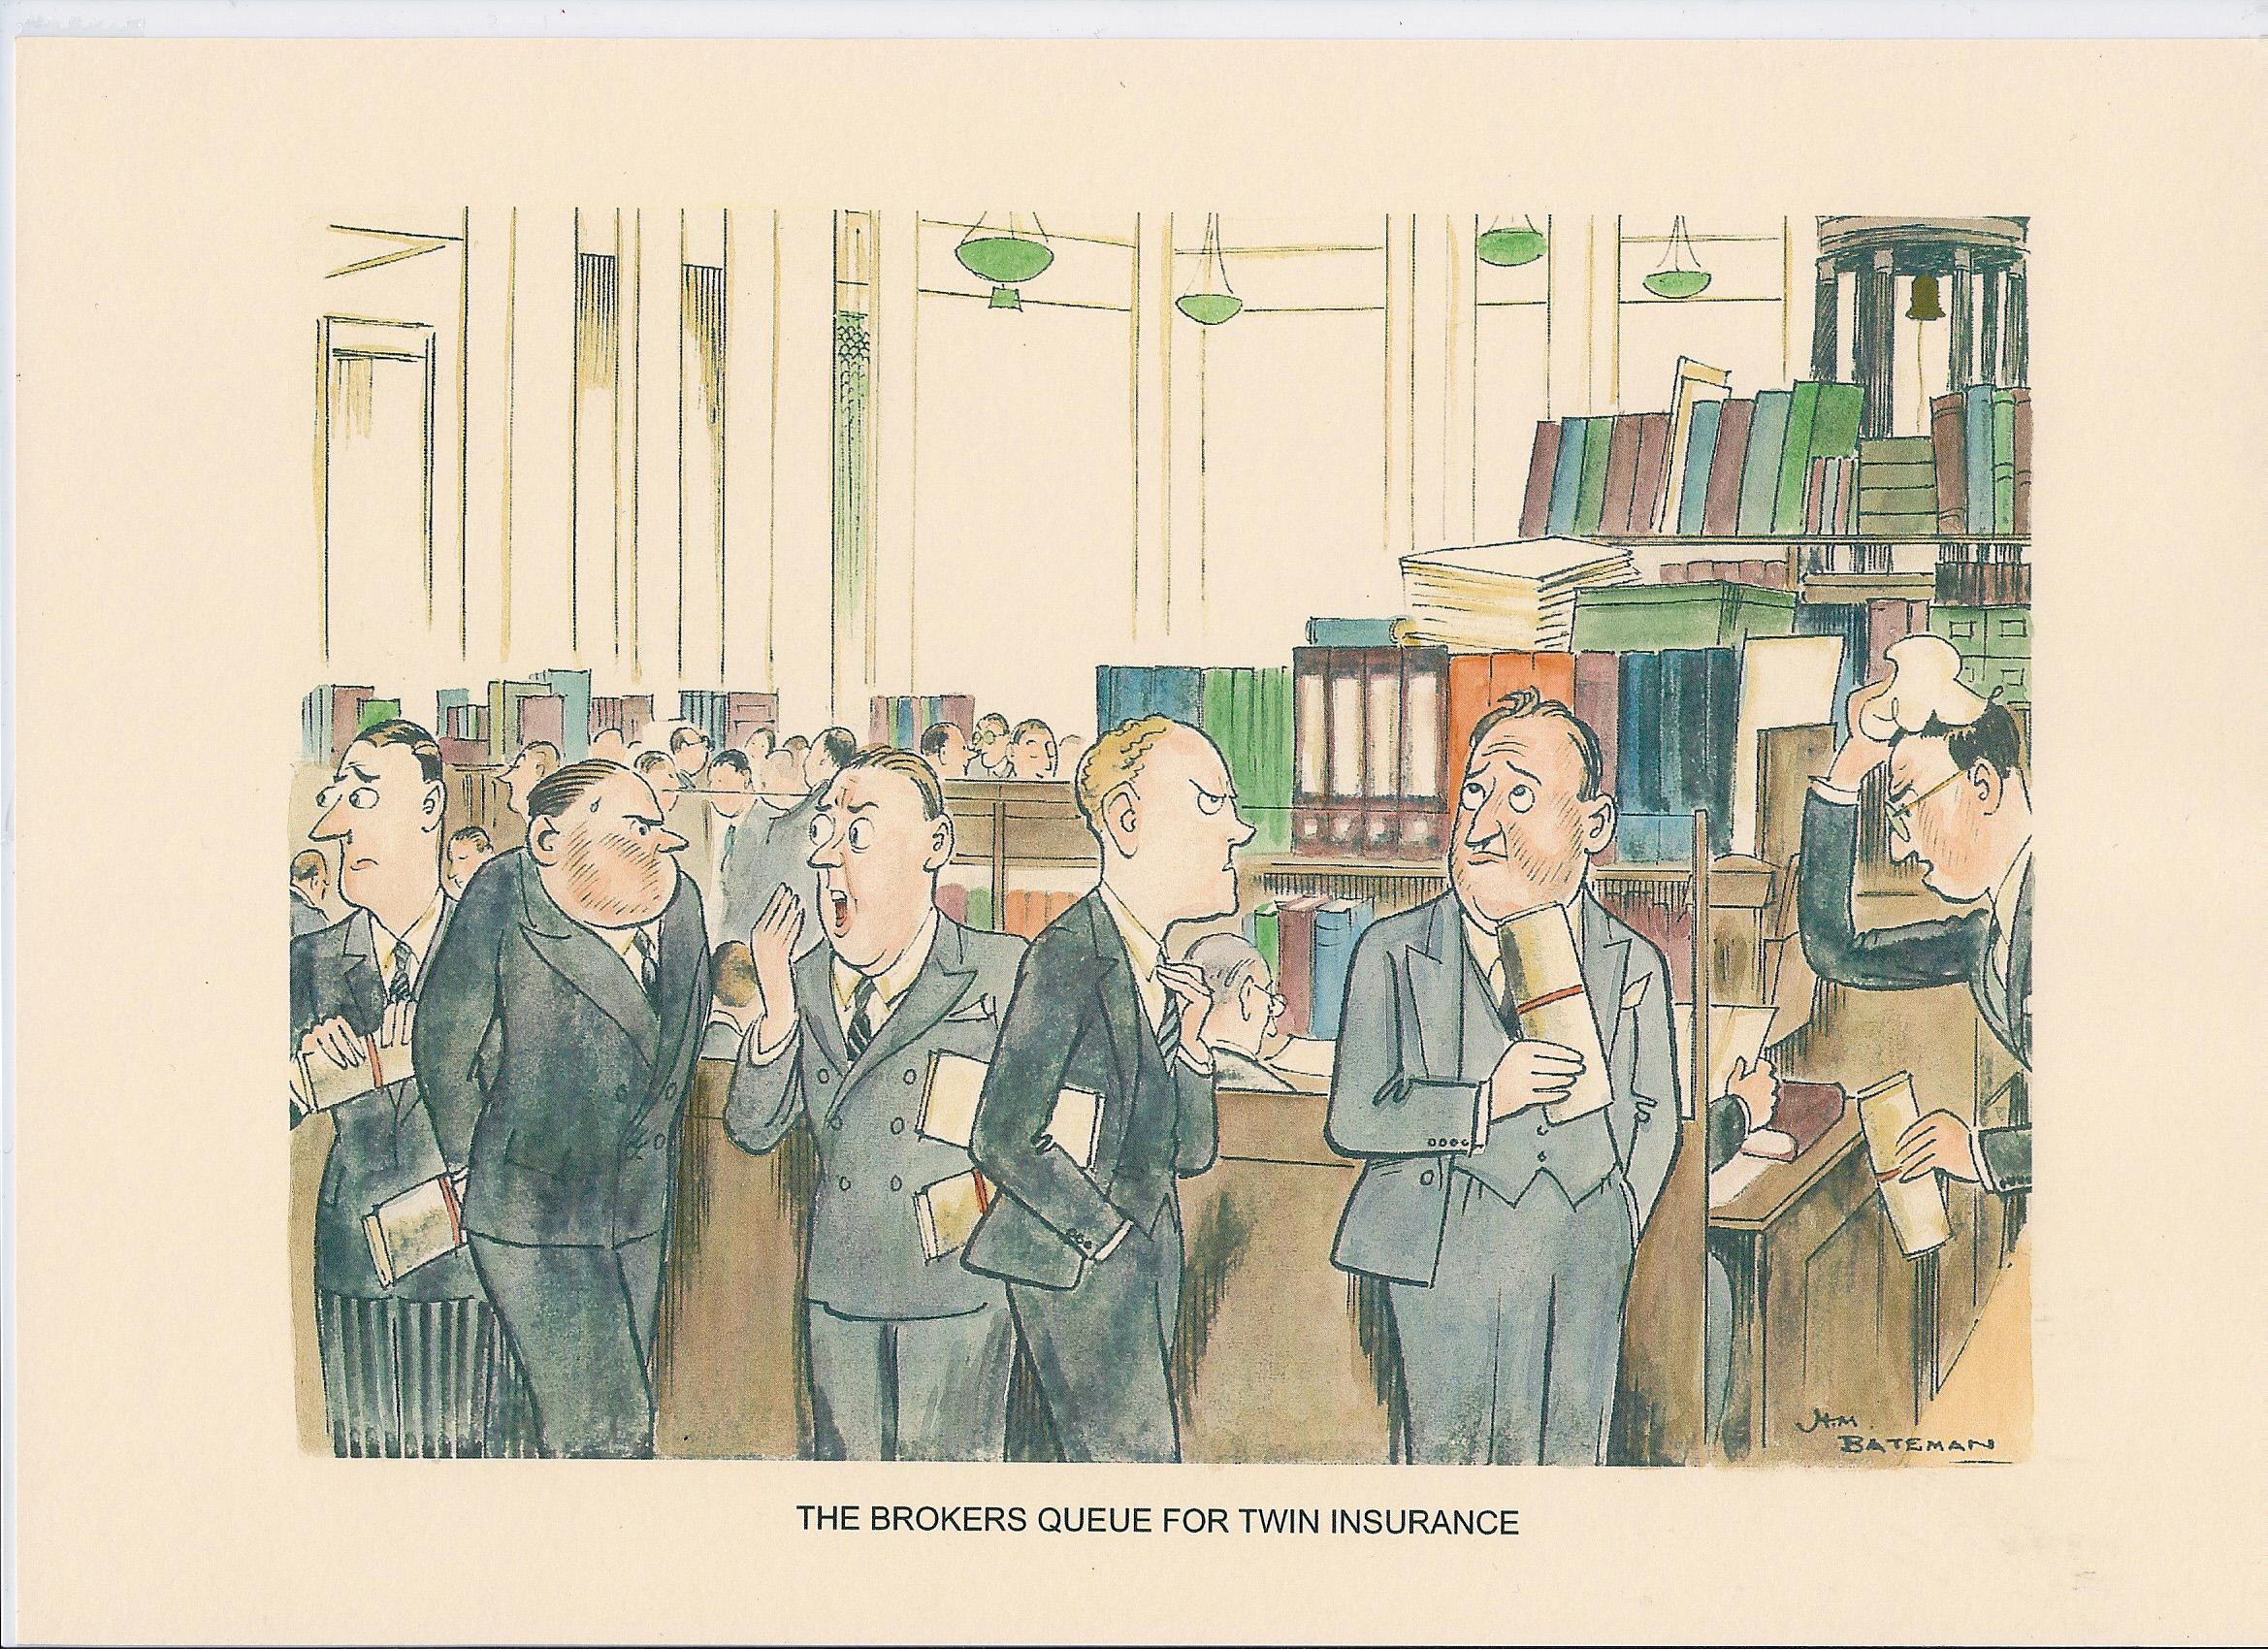 The Brokers Queue For Twin Insurance